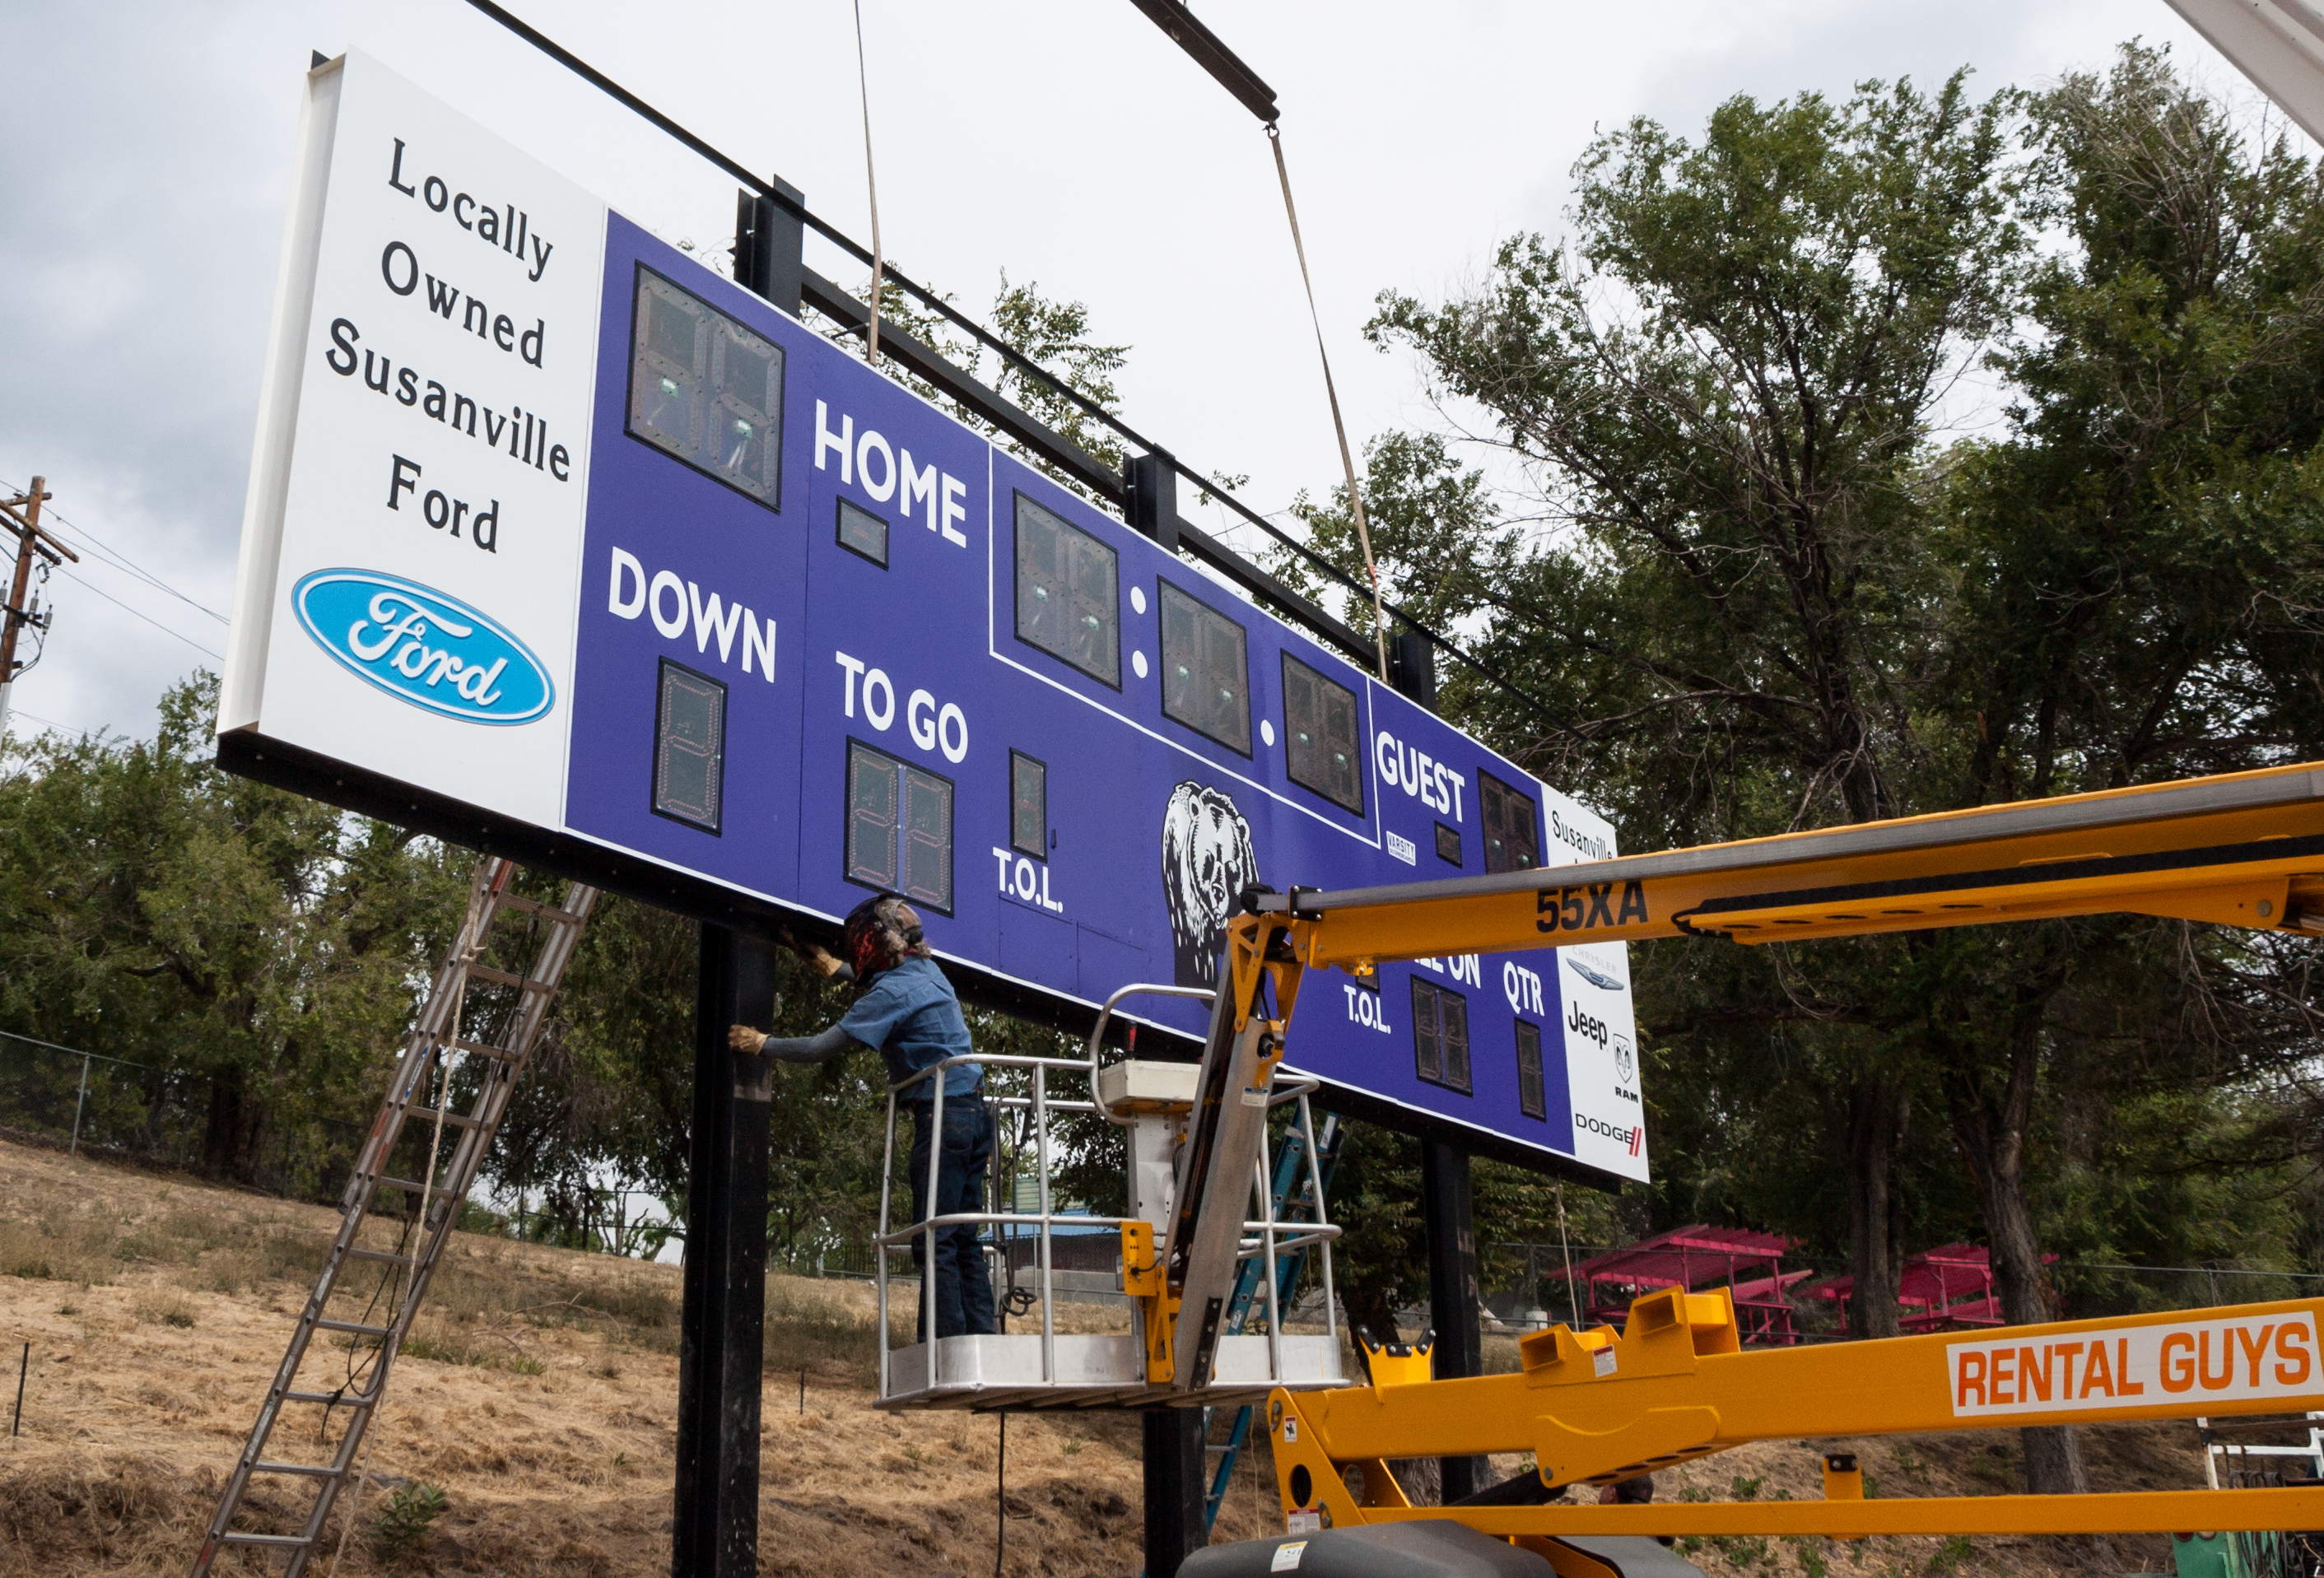 Arnold Field Gets A Huge New Scoreboard Thanks To